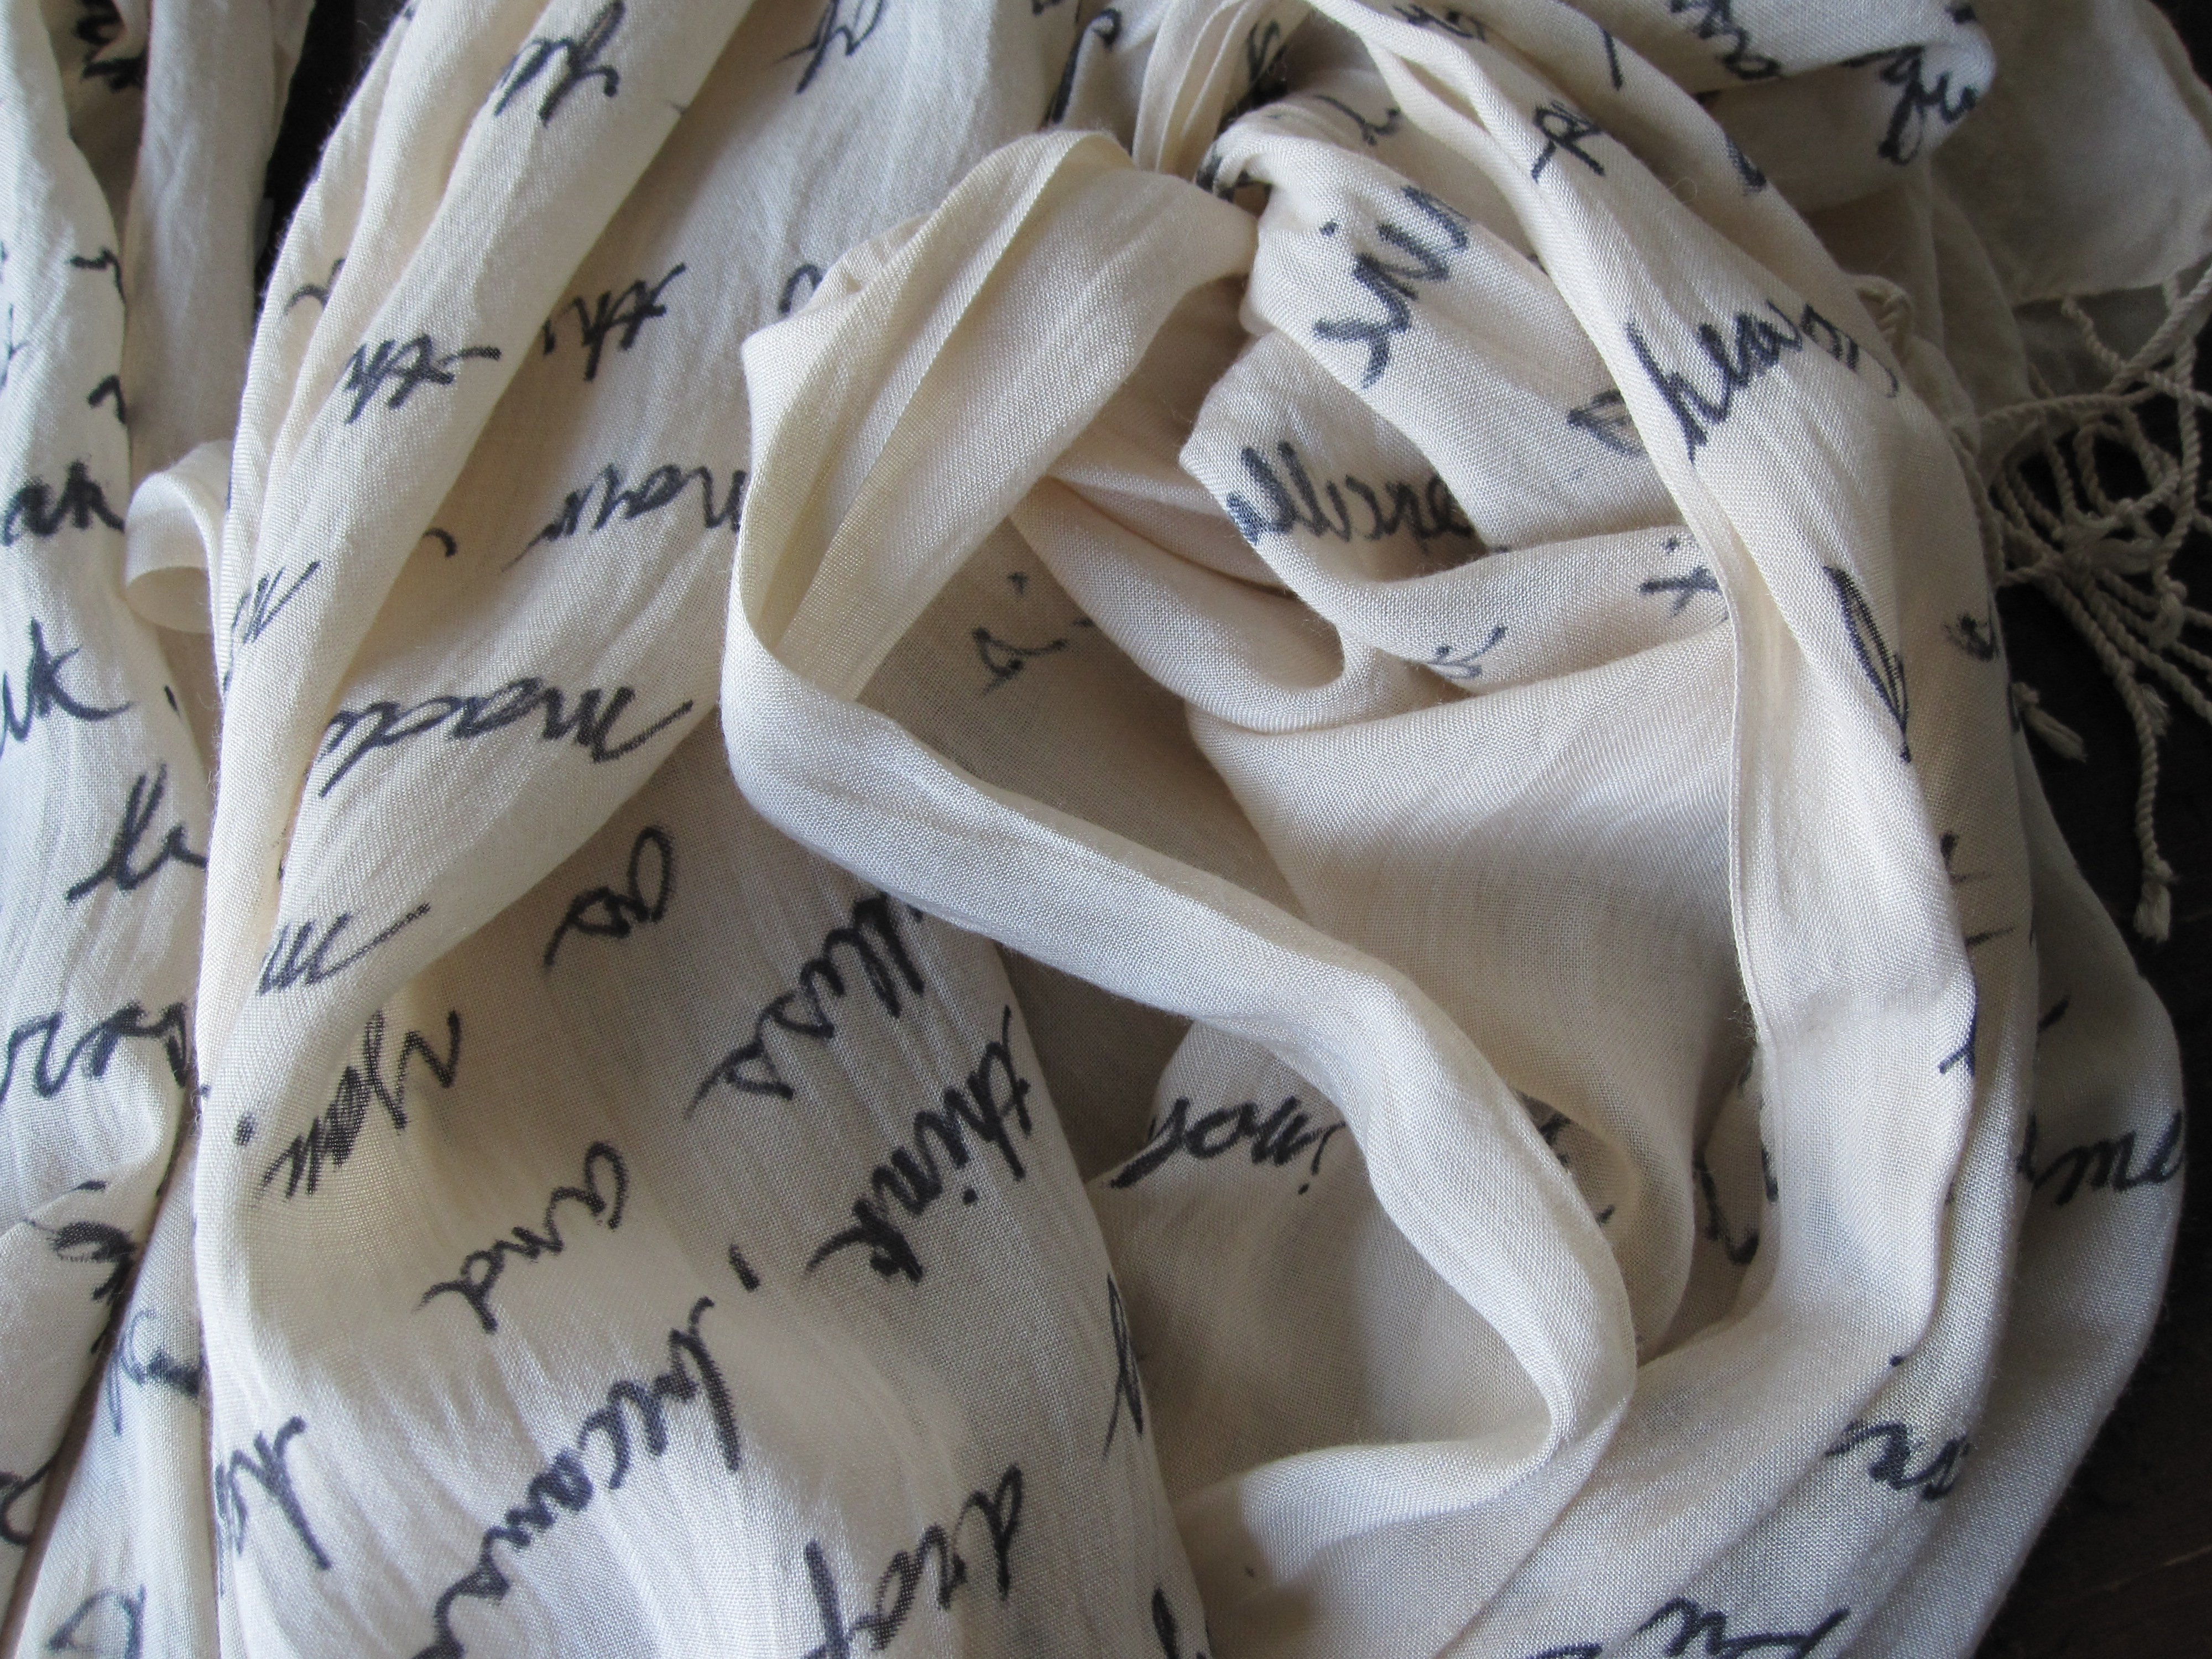 Today, I'm linking up withThe Blended Blogfor TBB Asks. This month's theme is All About Love, and I'm sharing my answers to these Valentine's Day inspired questions. Plus, I'm sharing a few love inspired DIY projects, too, like this literary quote scarf.